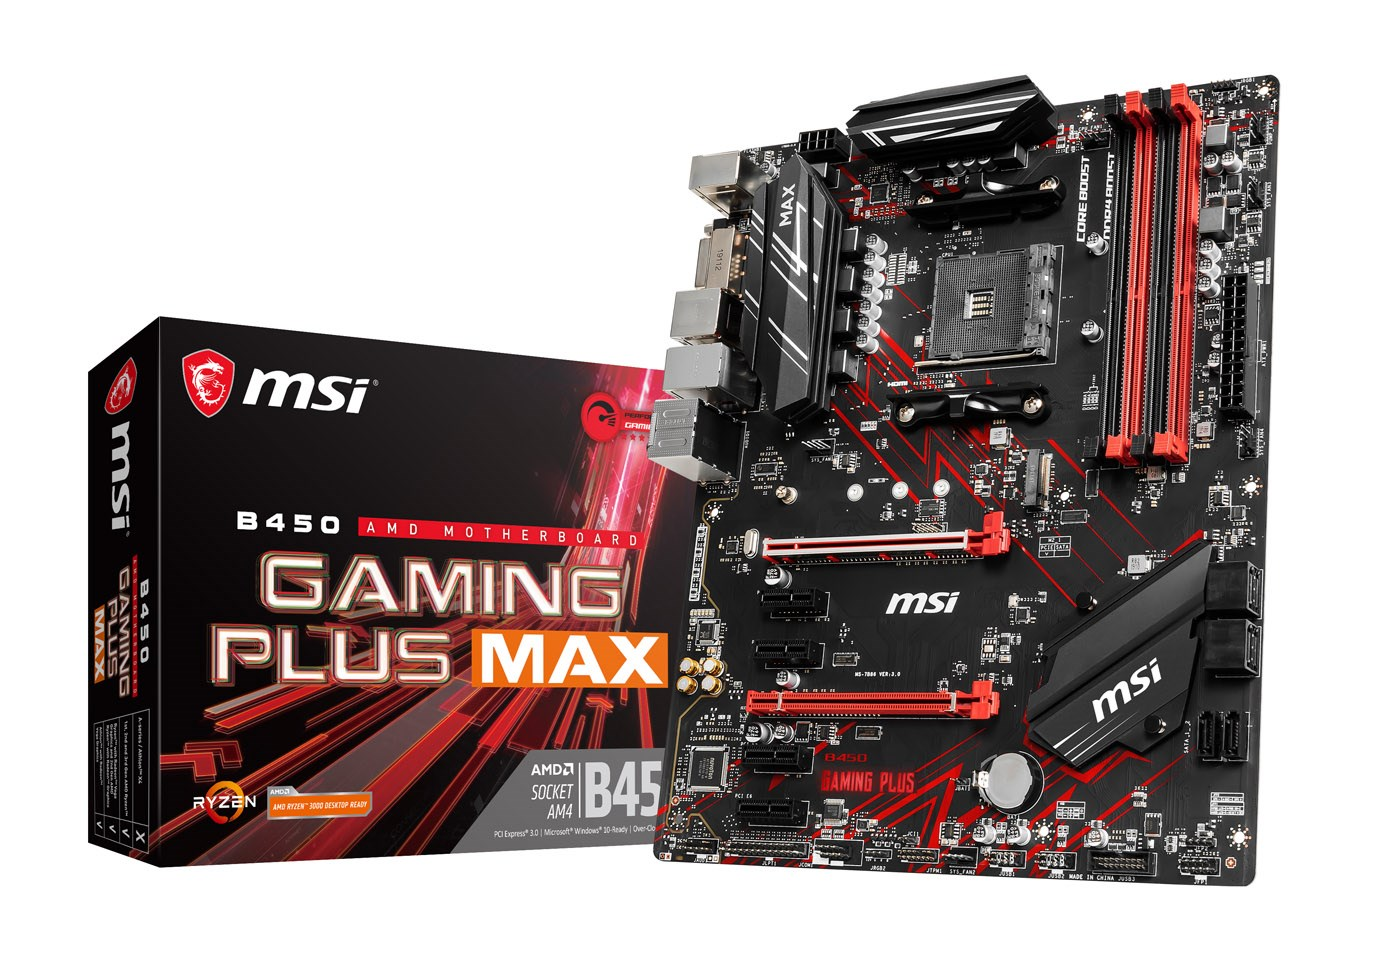 MSI B450 GAMING PLUS MAX ATX Motherboard for AMD AM4 CPUs